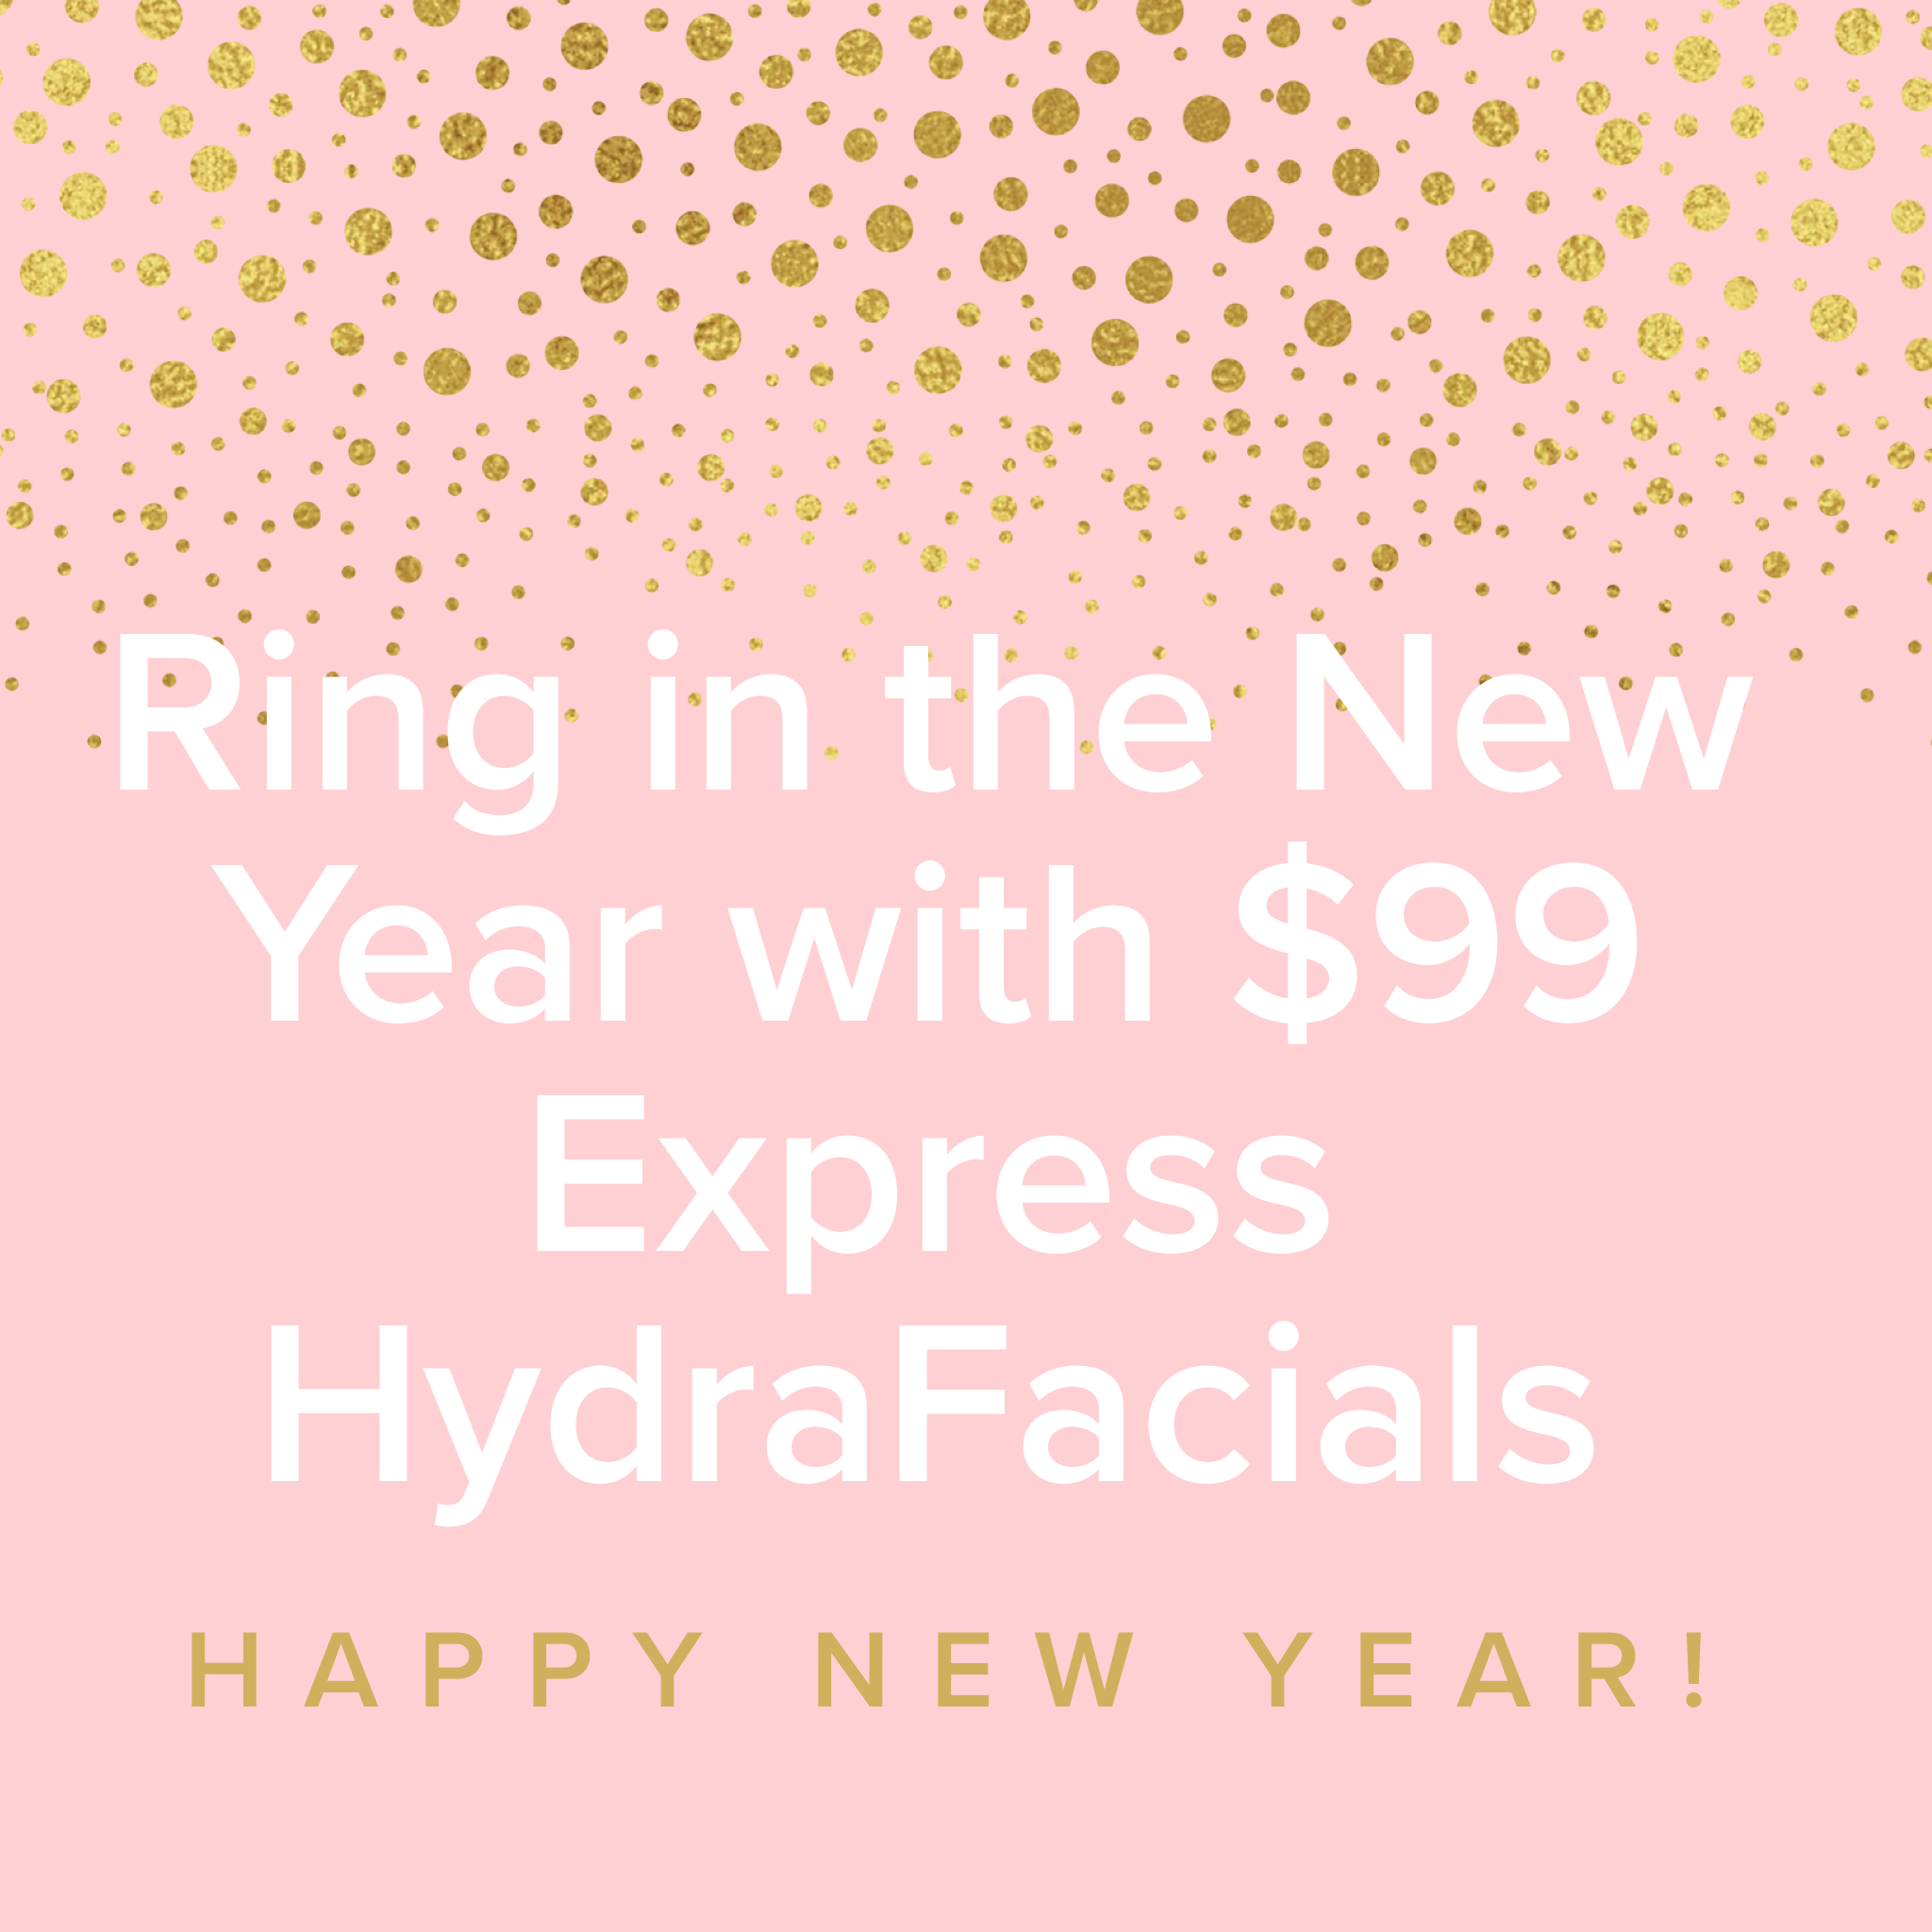 Last Day To Purchase $99 Express HydraFacial Treatment